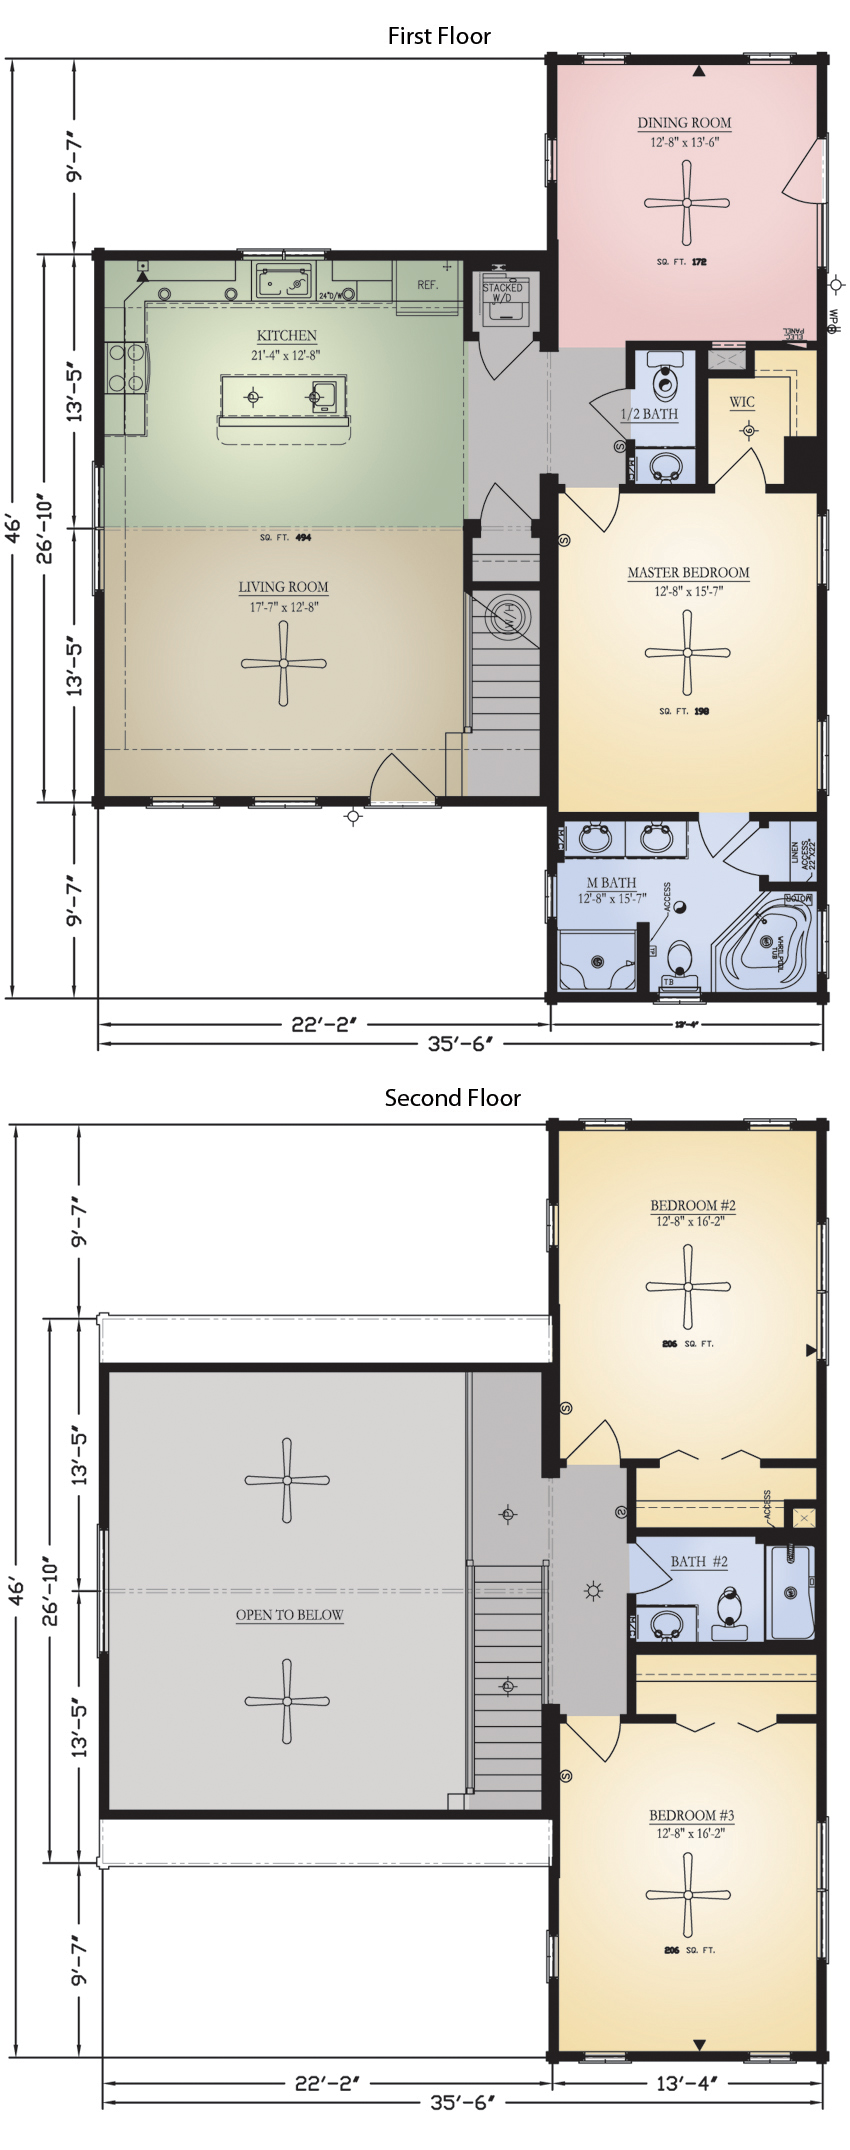 Log Home: Savannah 2 Floor Plan